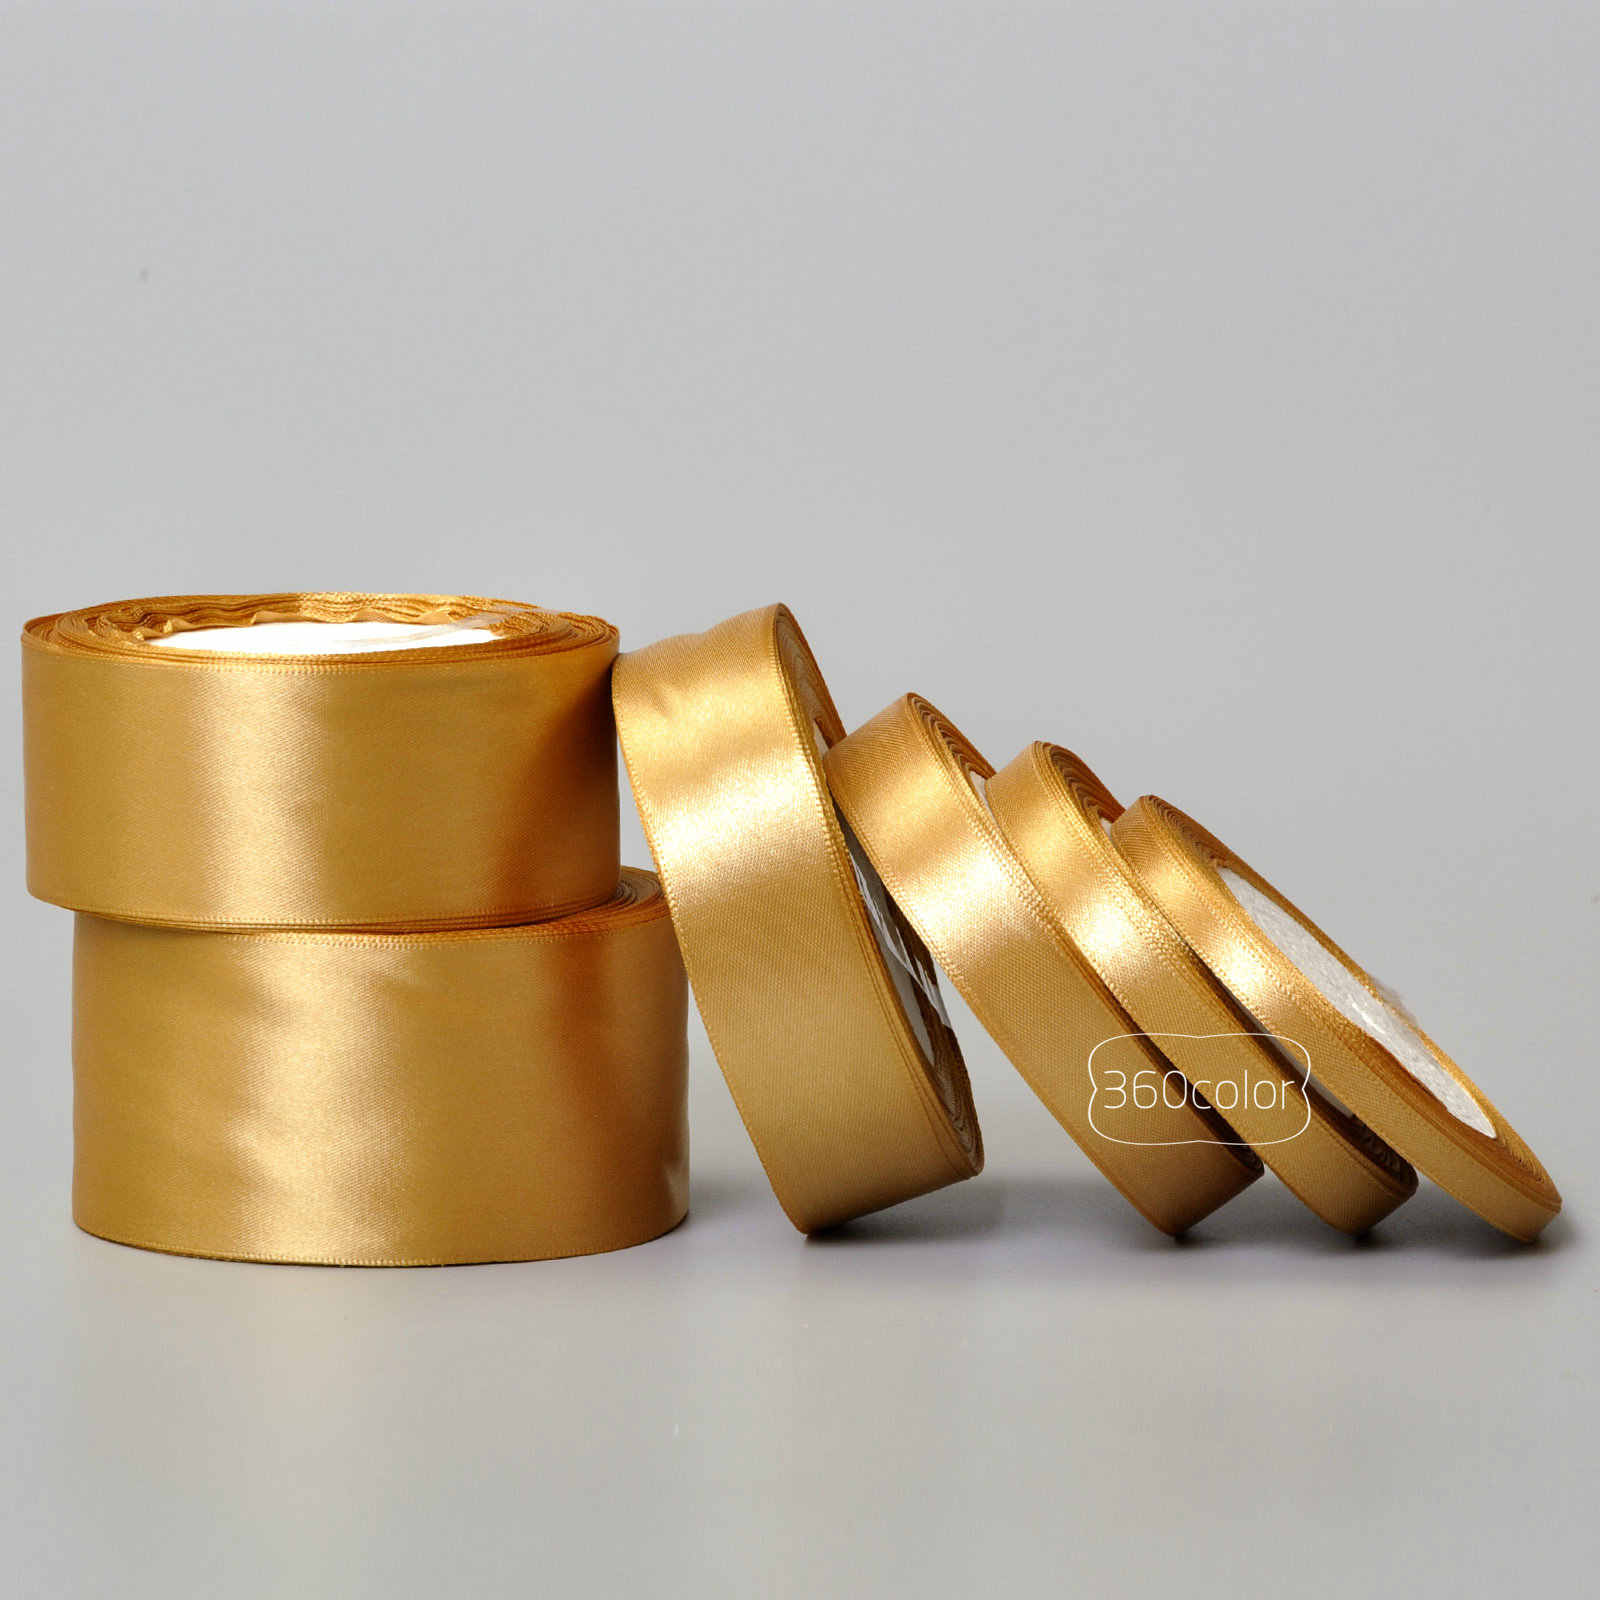 25 Yards Gold Silk Satin Ribbon Gift Wrapping Bow Wedding Party Decoration Christmas New Year Apparel Sewing Fabric Ribbon